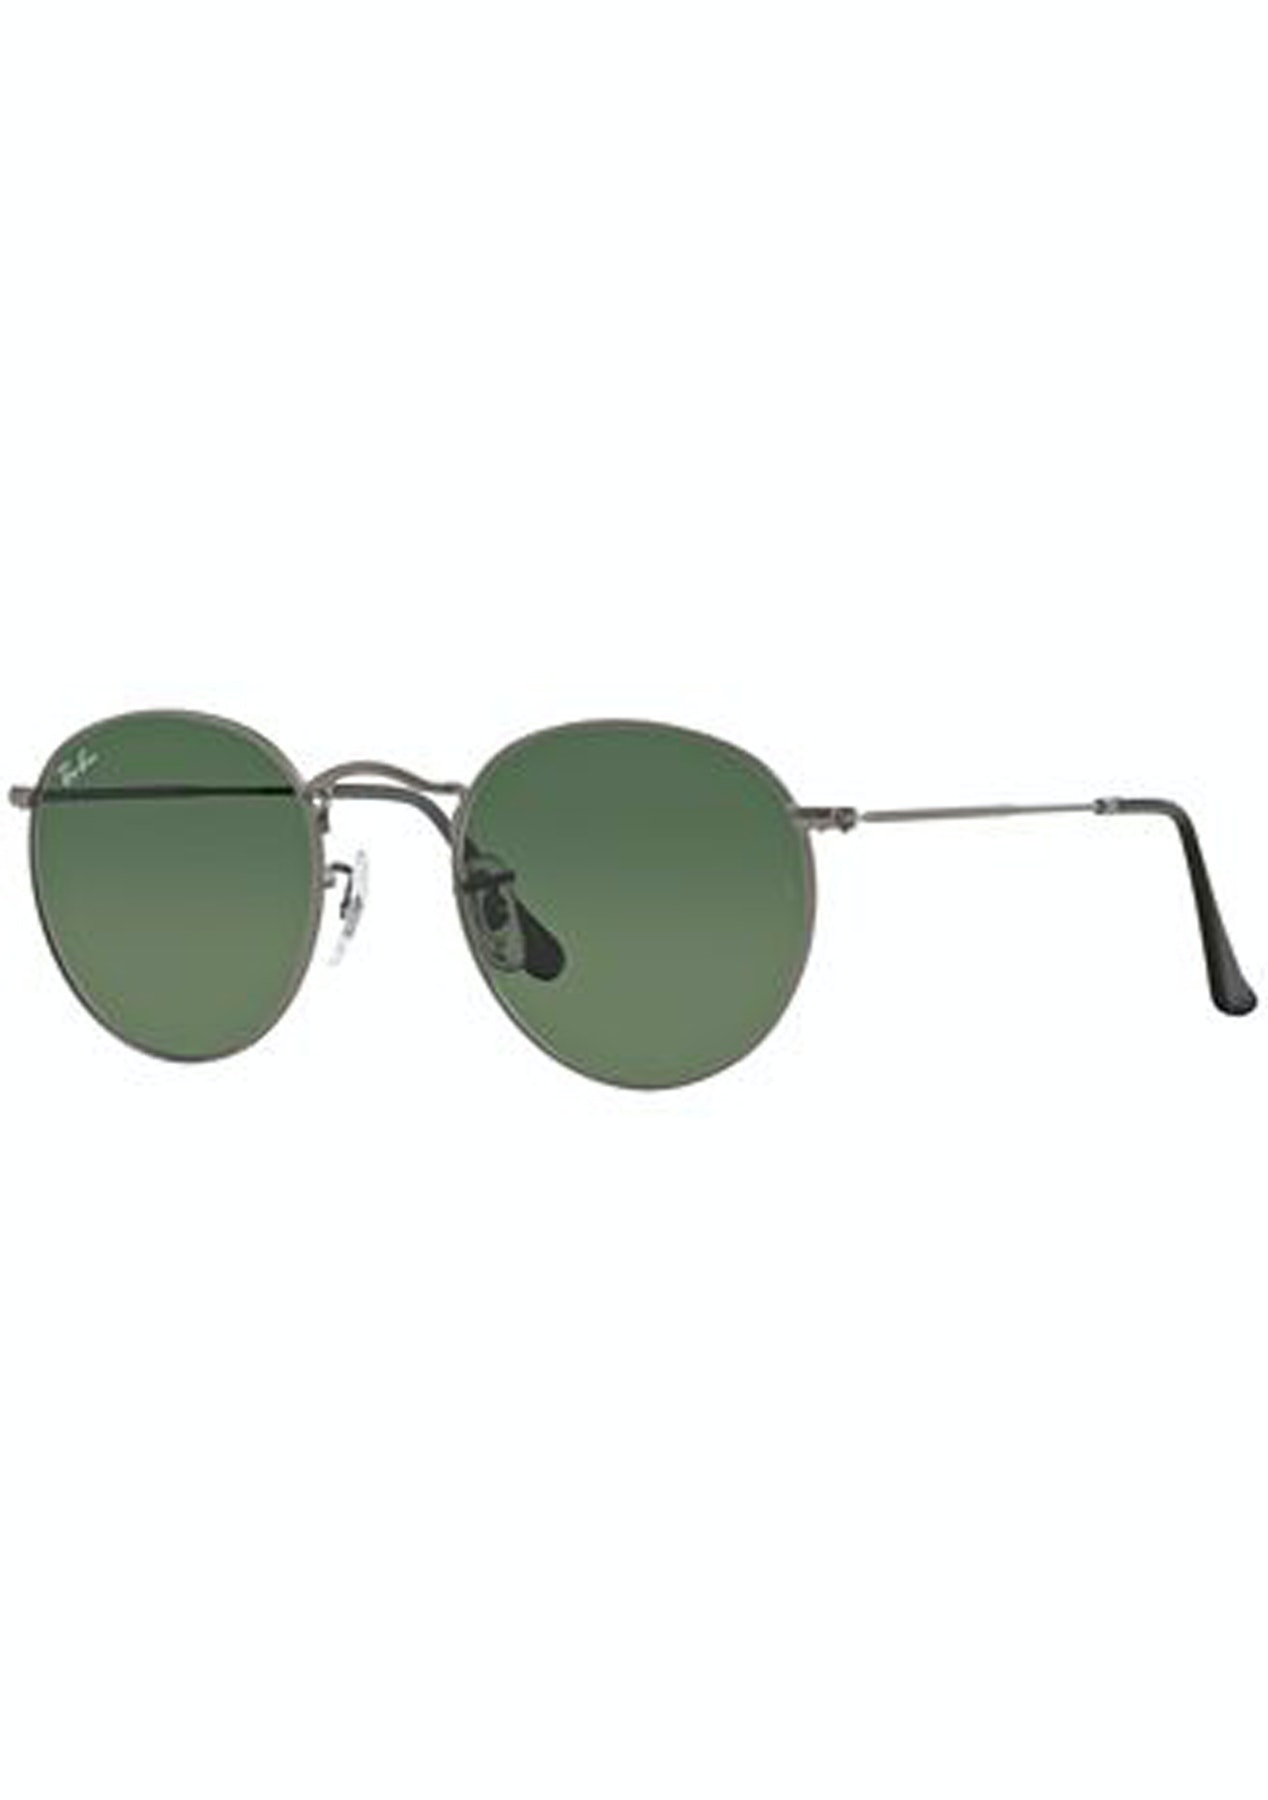 f20dc60b070 Ray-Ban - Round Metal Sunglasses - Gunmetal - On Trend Accessories - Onceit